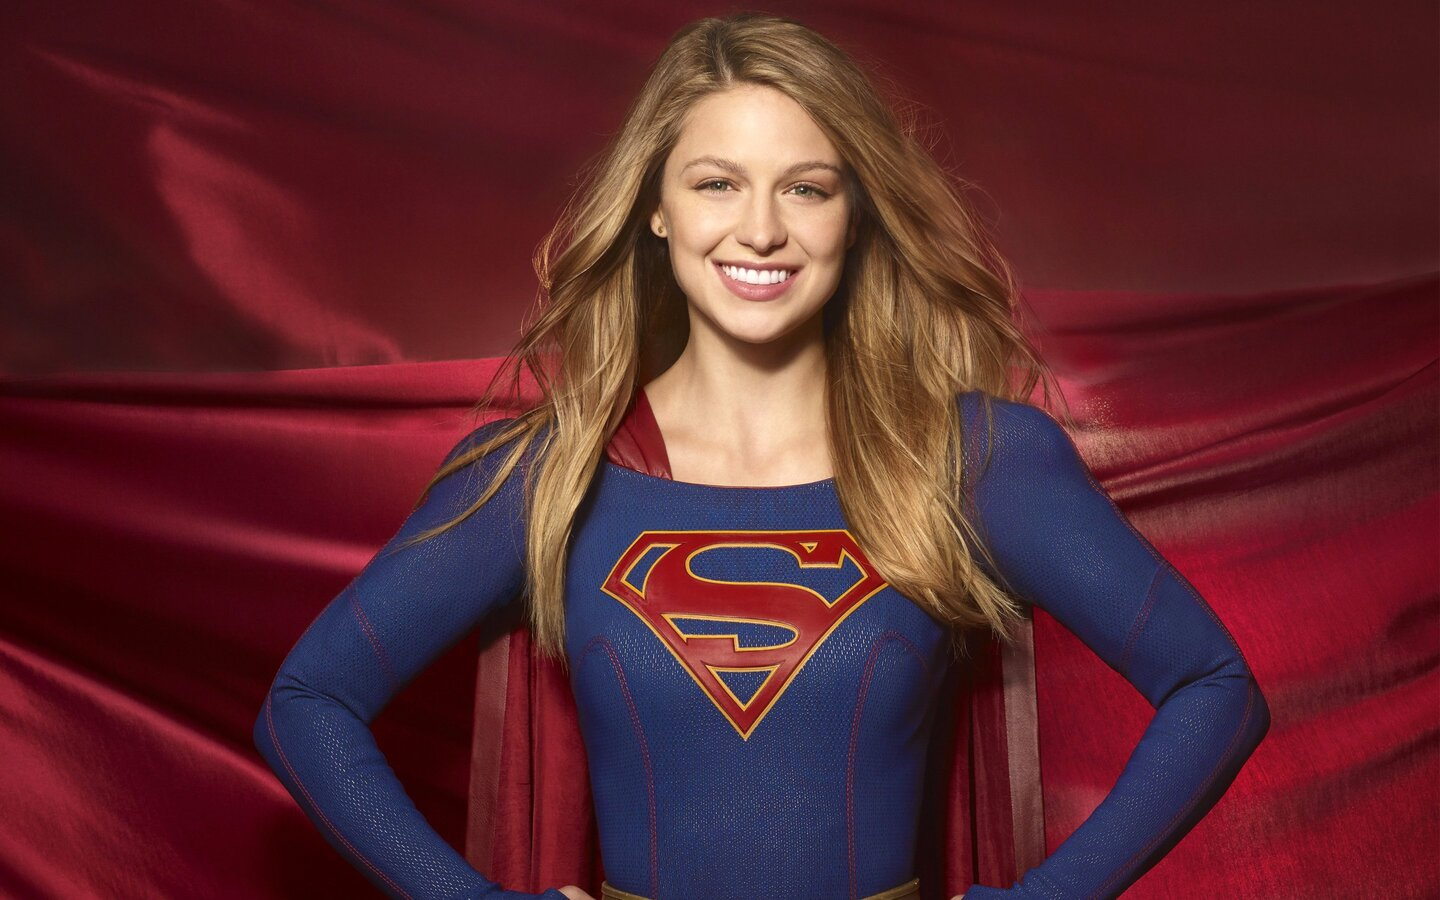 Wallpaper Supergirl, 2017, Season 3, HD, TV Series, #7423